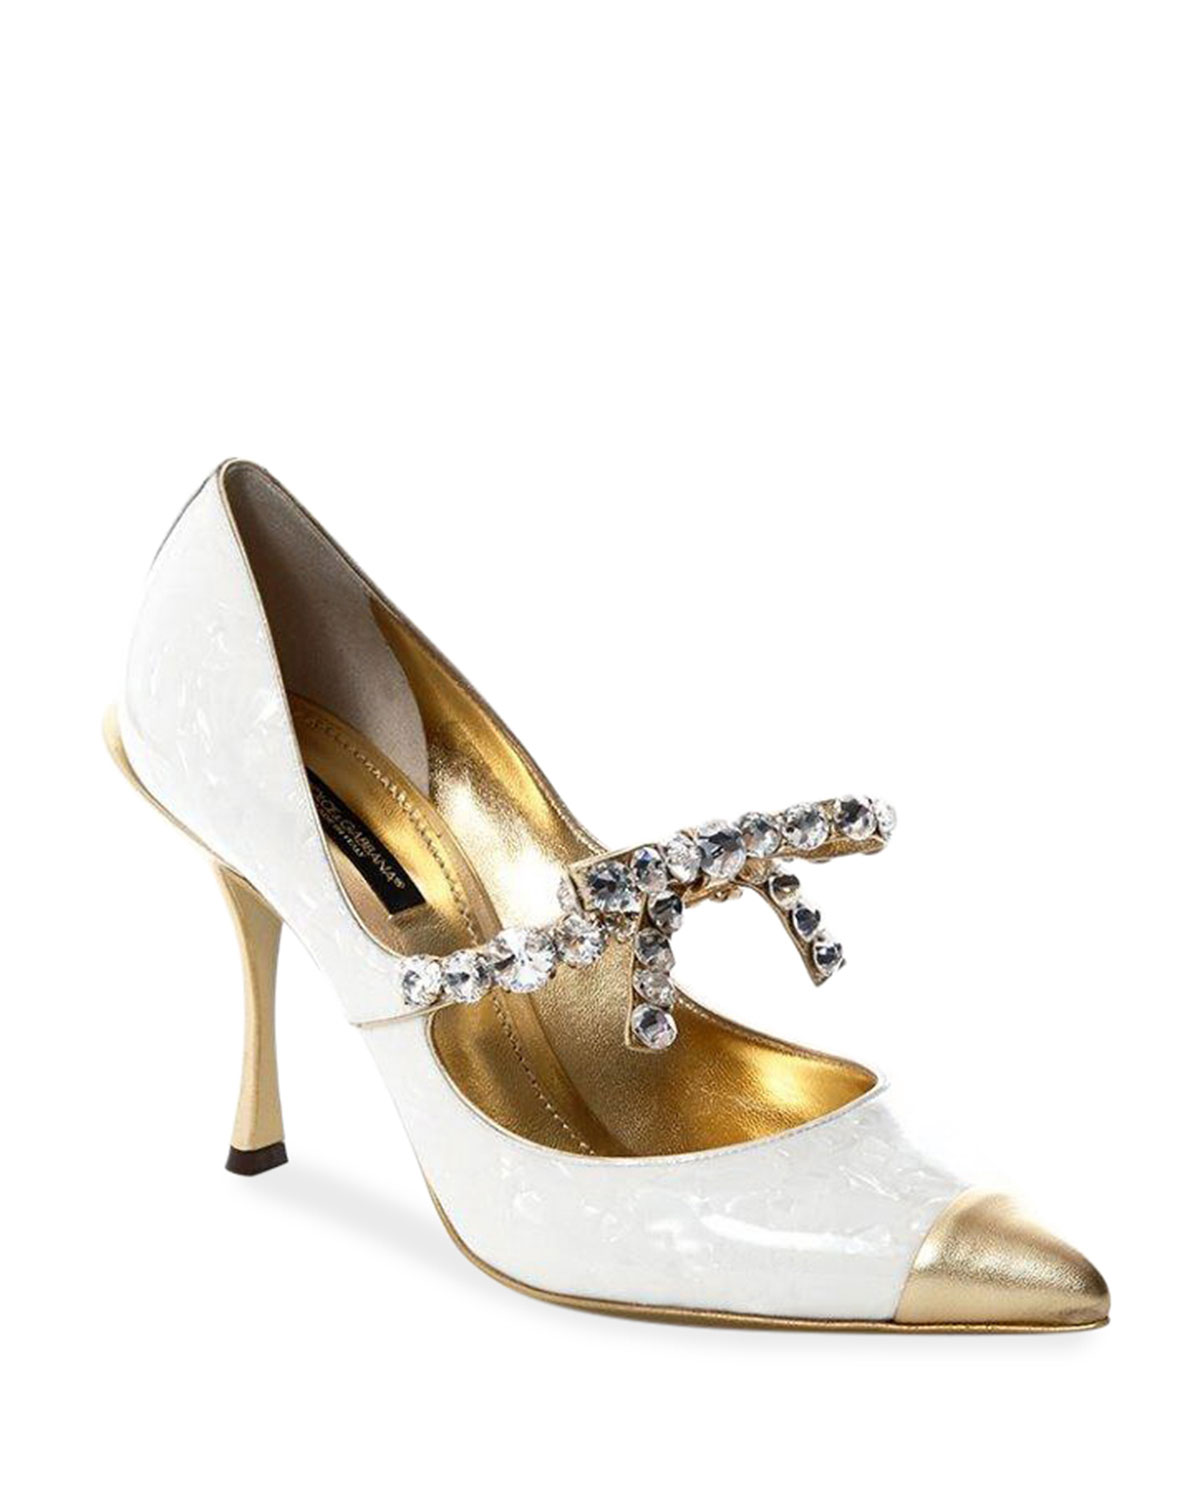 Patent Leather Pumps with Crystal Trim